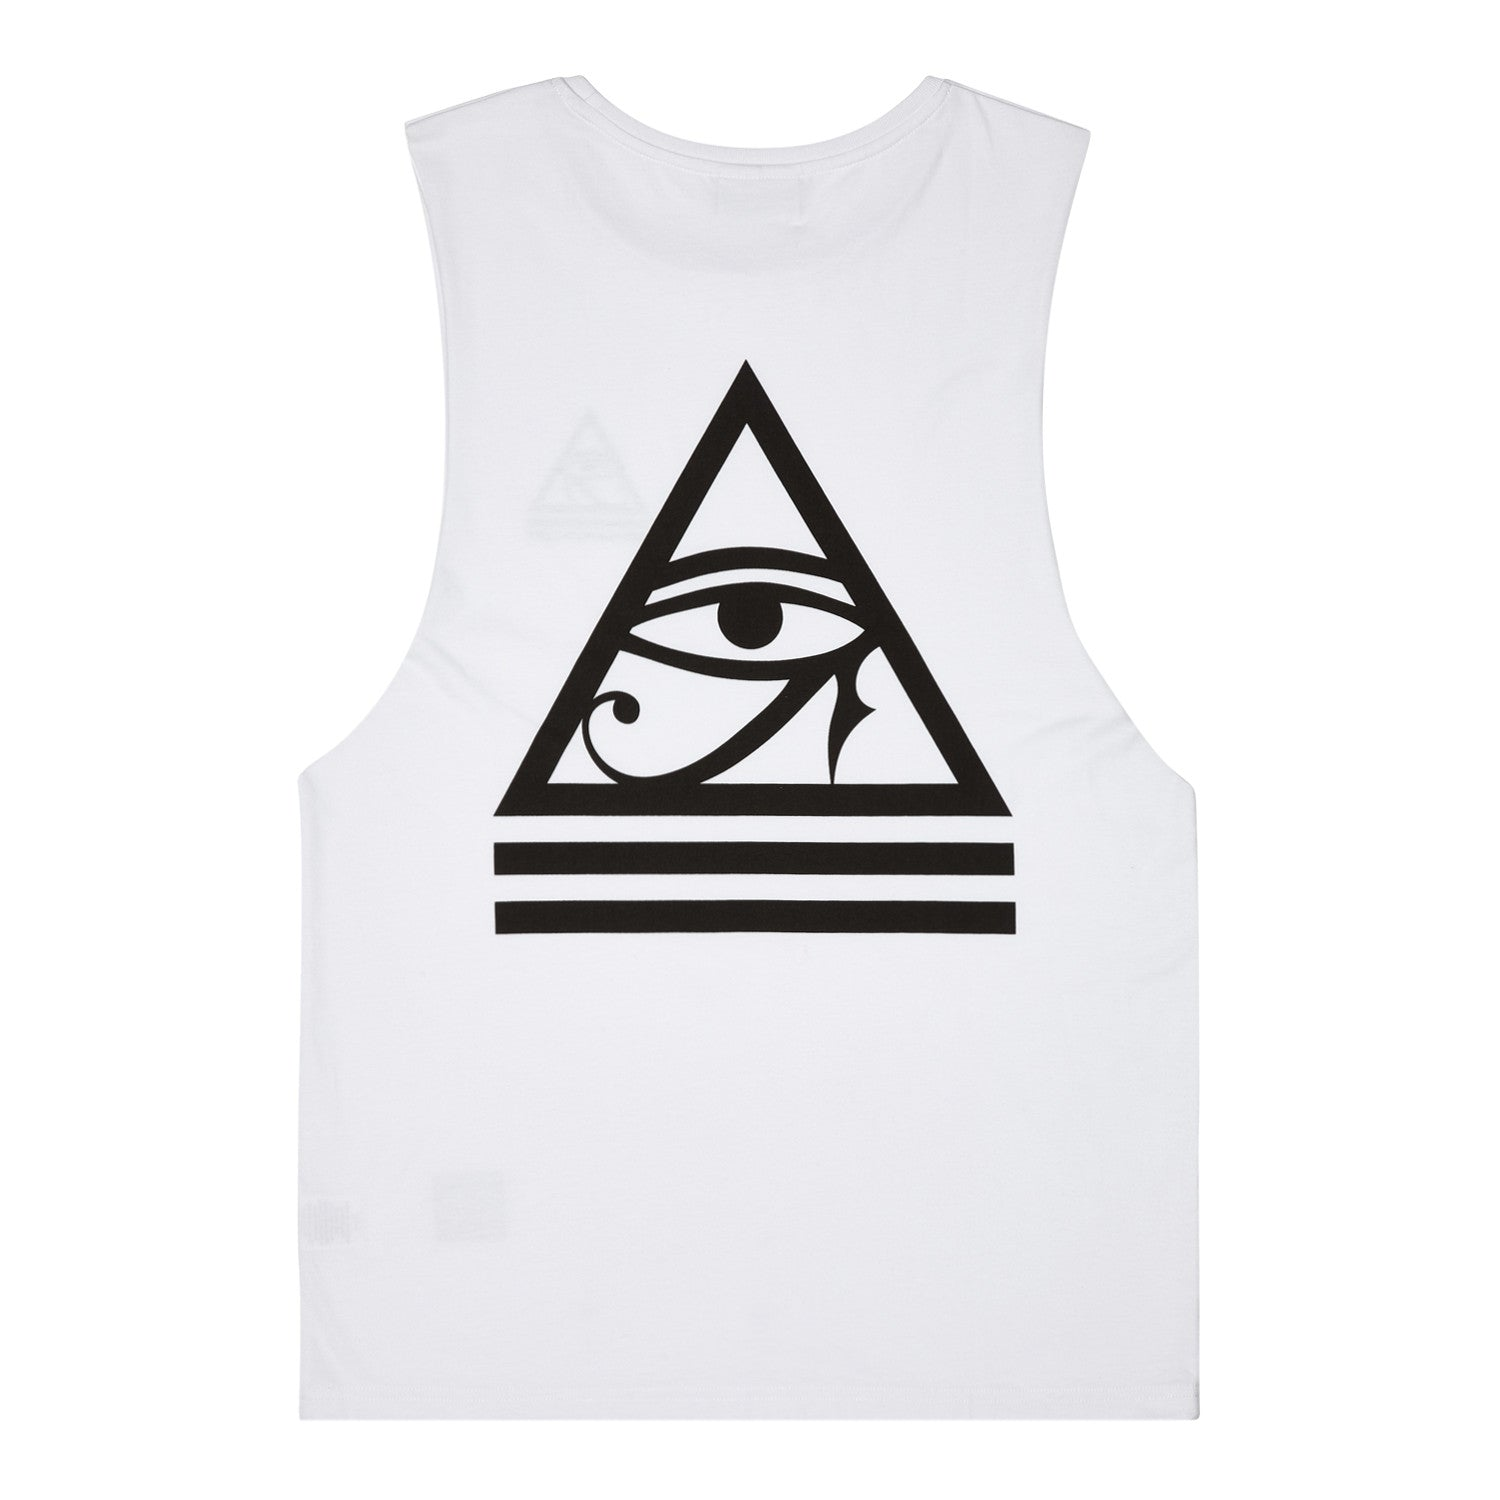 3.8 White All Seeing Eye Muscle Tee